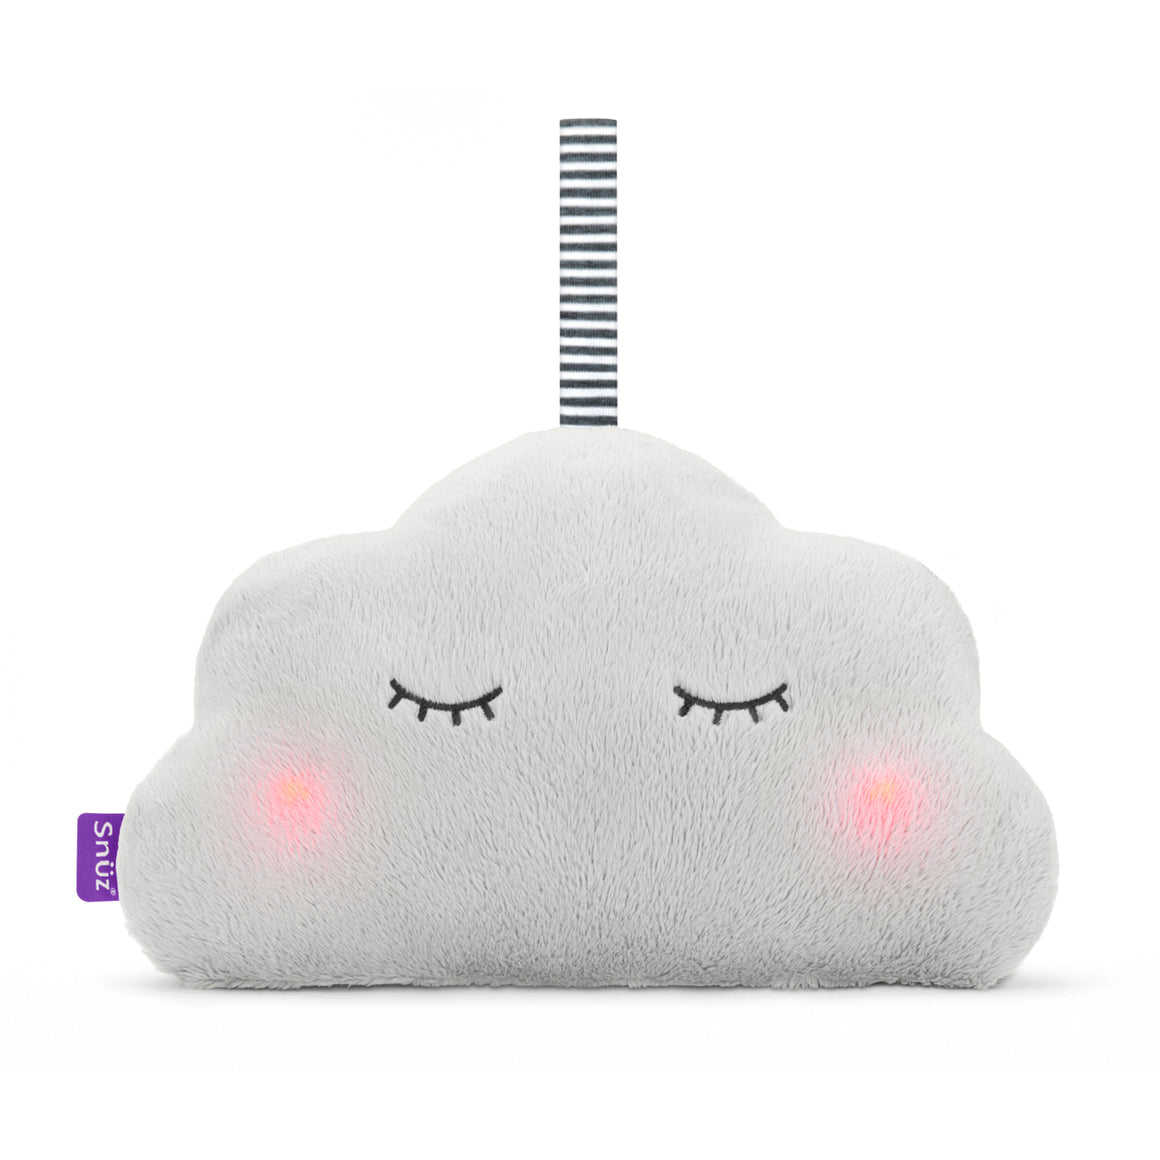 SnuzCloud Baby Sleep Aid - Grey